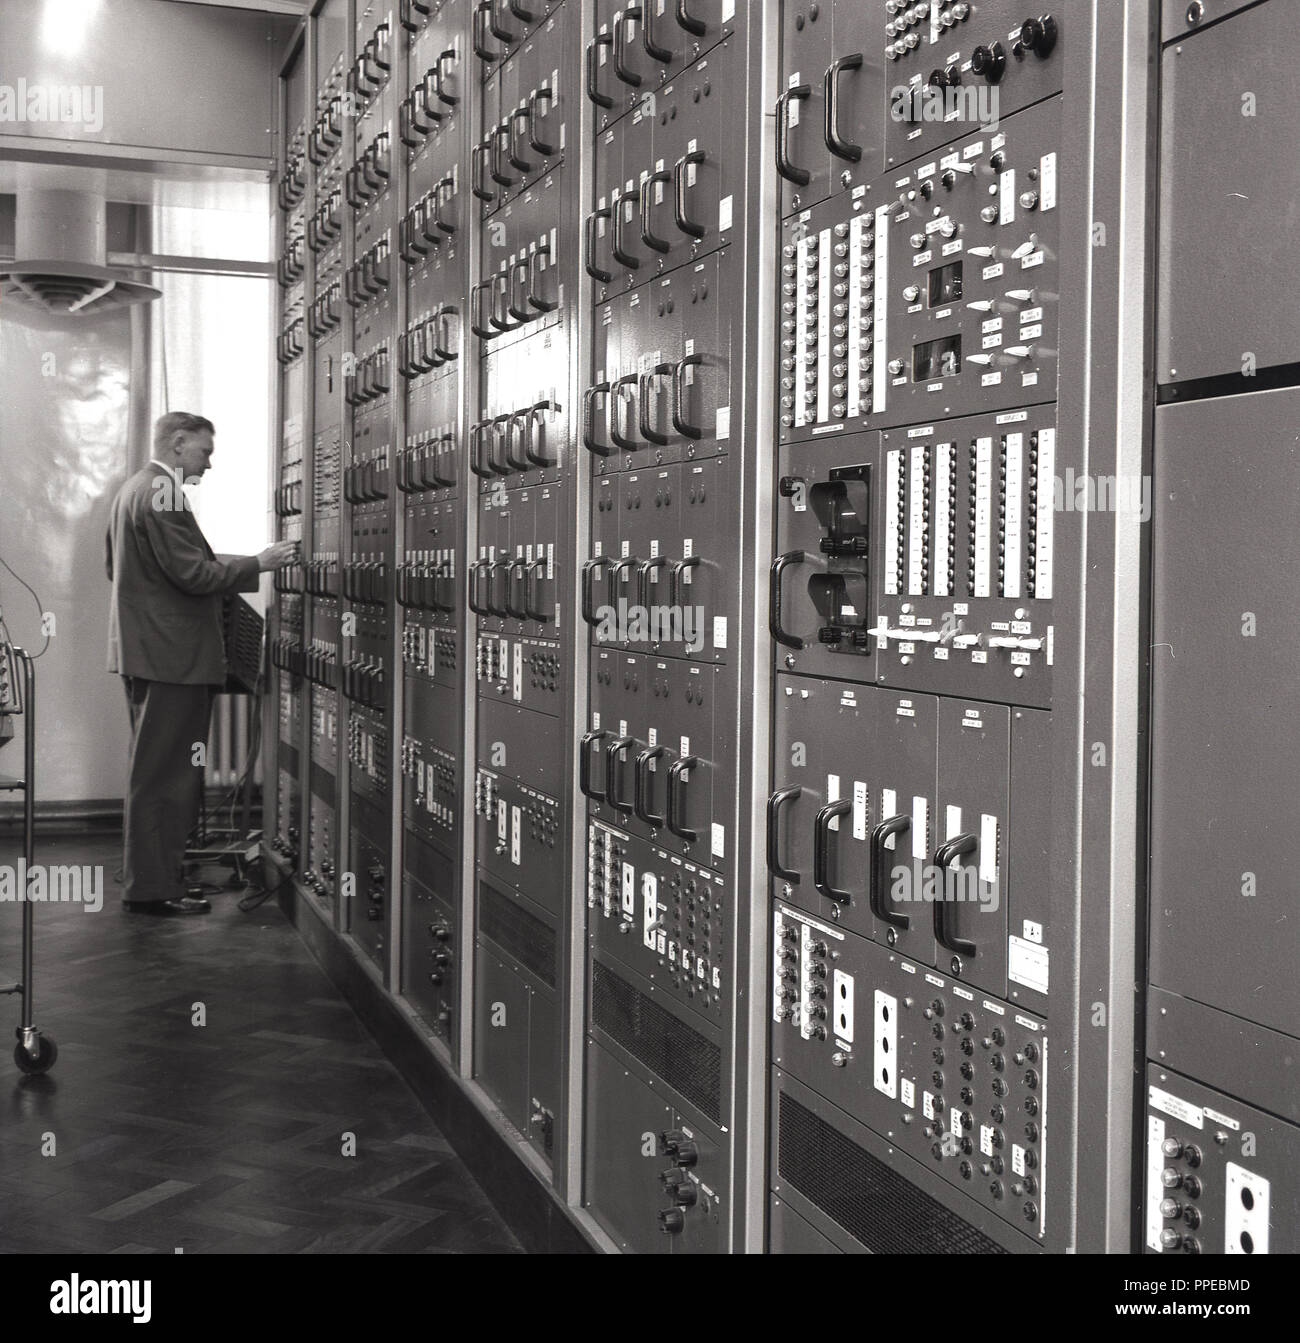 1950s, man checking on the operation of wireless broadcasting equipment or monitors, England, UK. - Stock Image